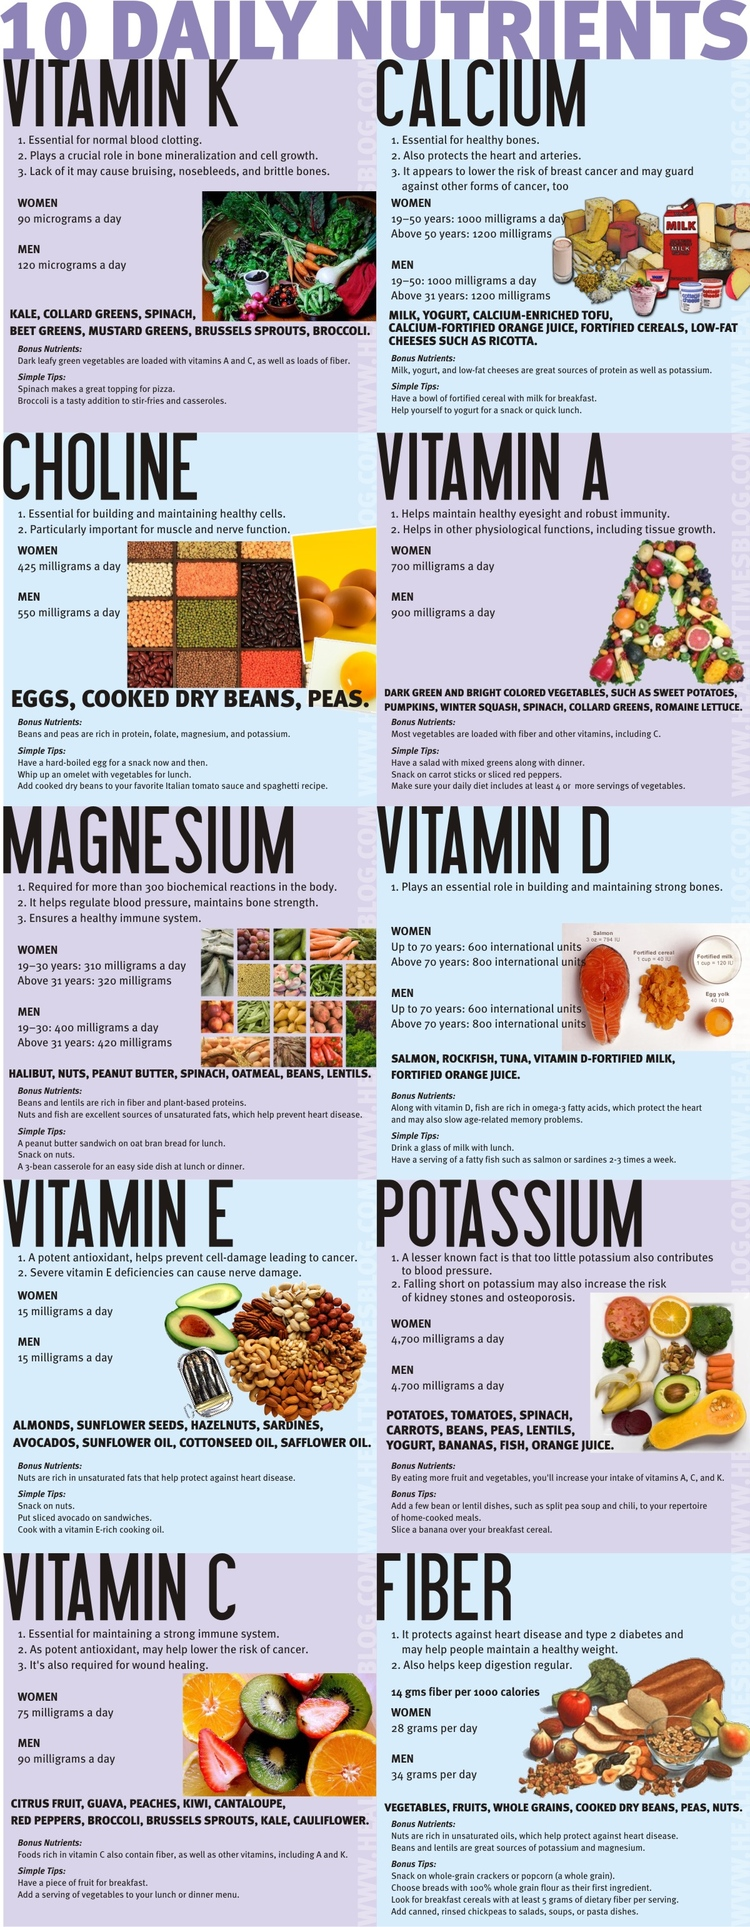 North Adams Chiropractor | North Adams chiropractic 10 Daily Nutrients You Need |  MA |